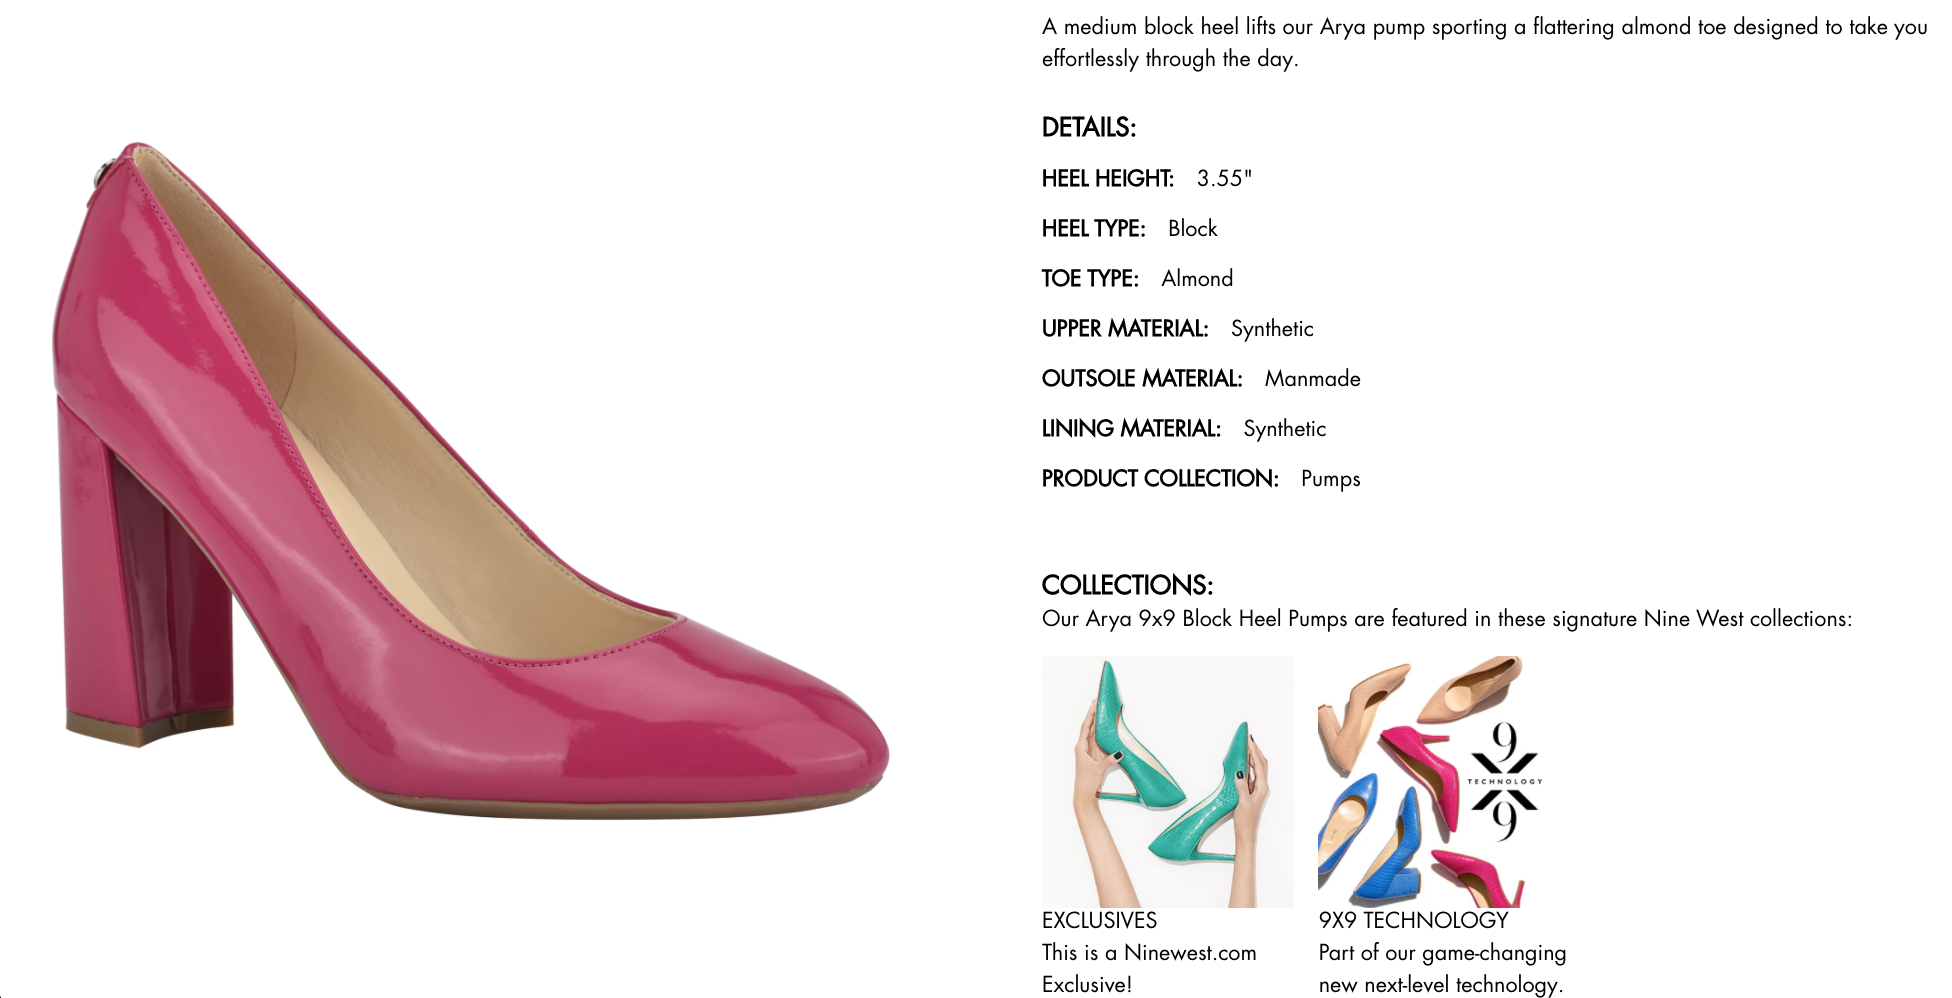 ecommerce merchandising descriptive text on product layout from Nine West